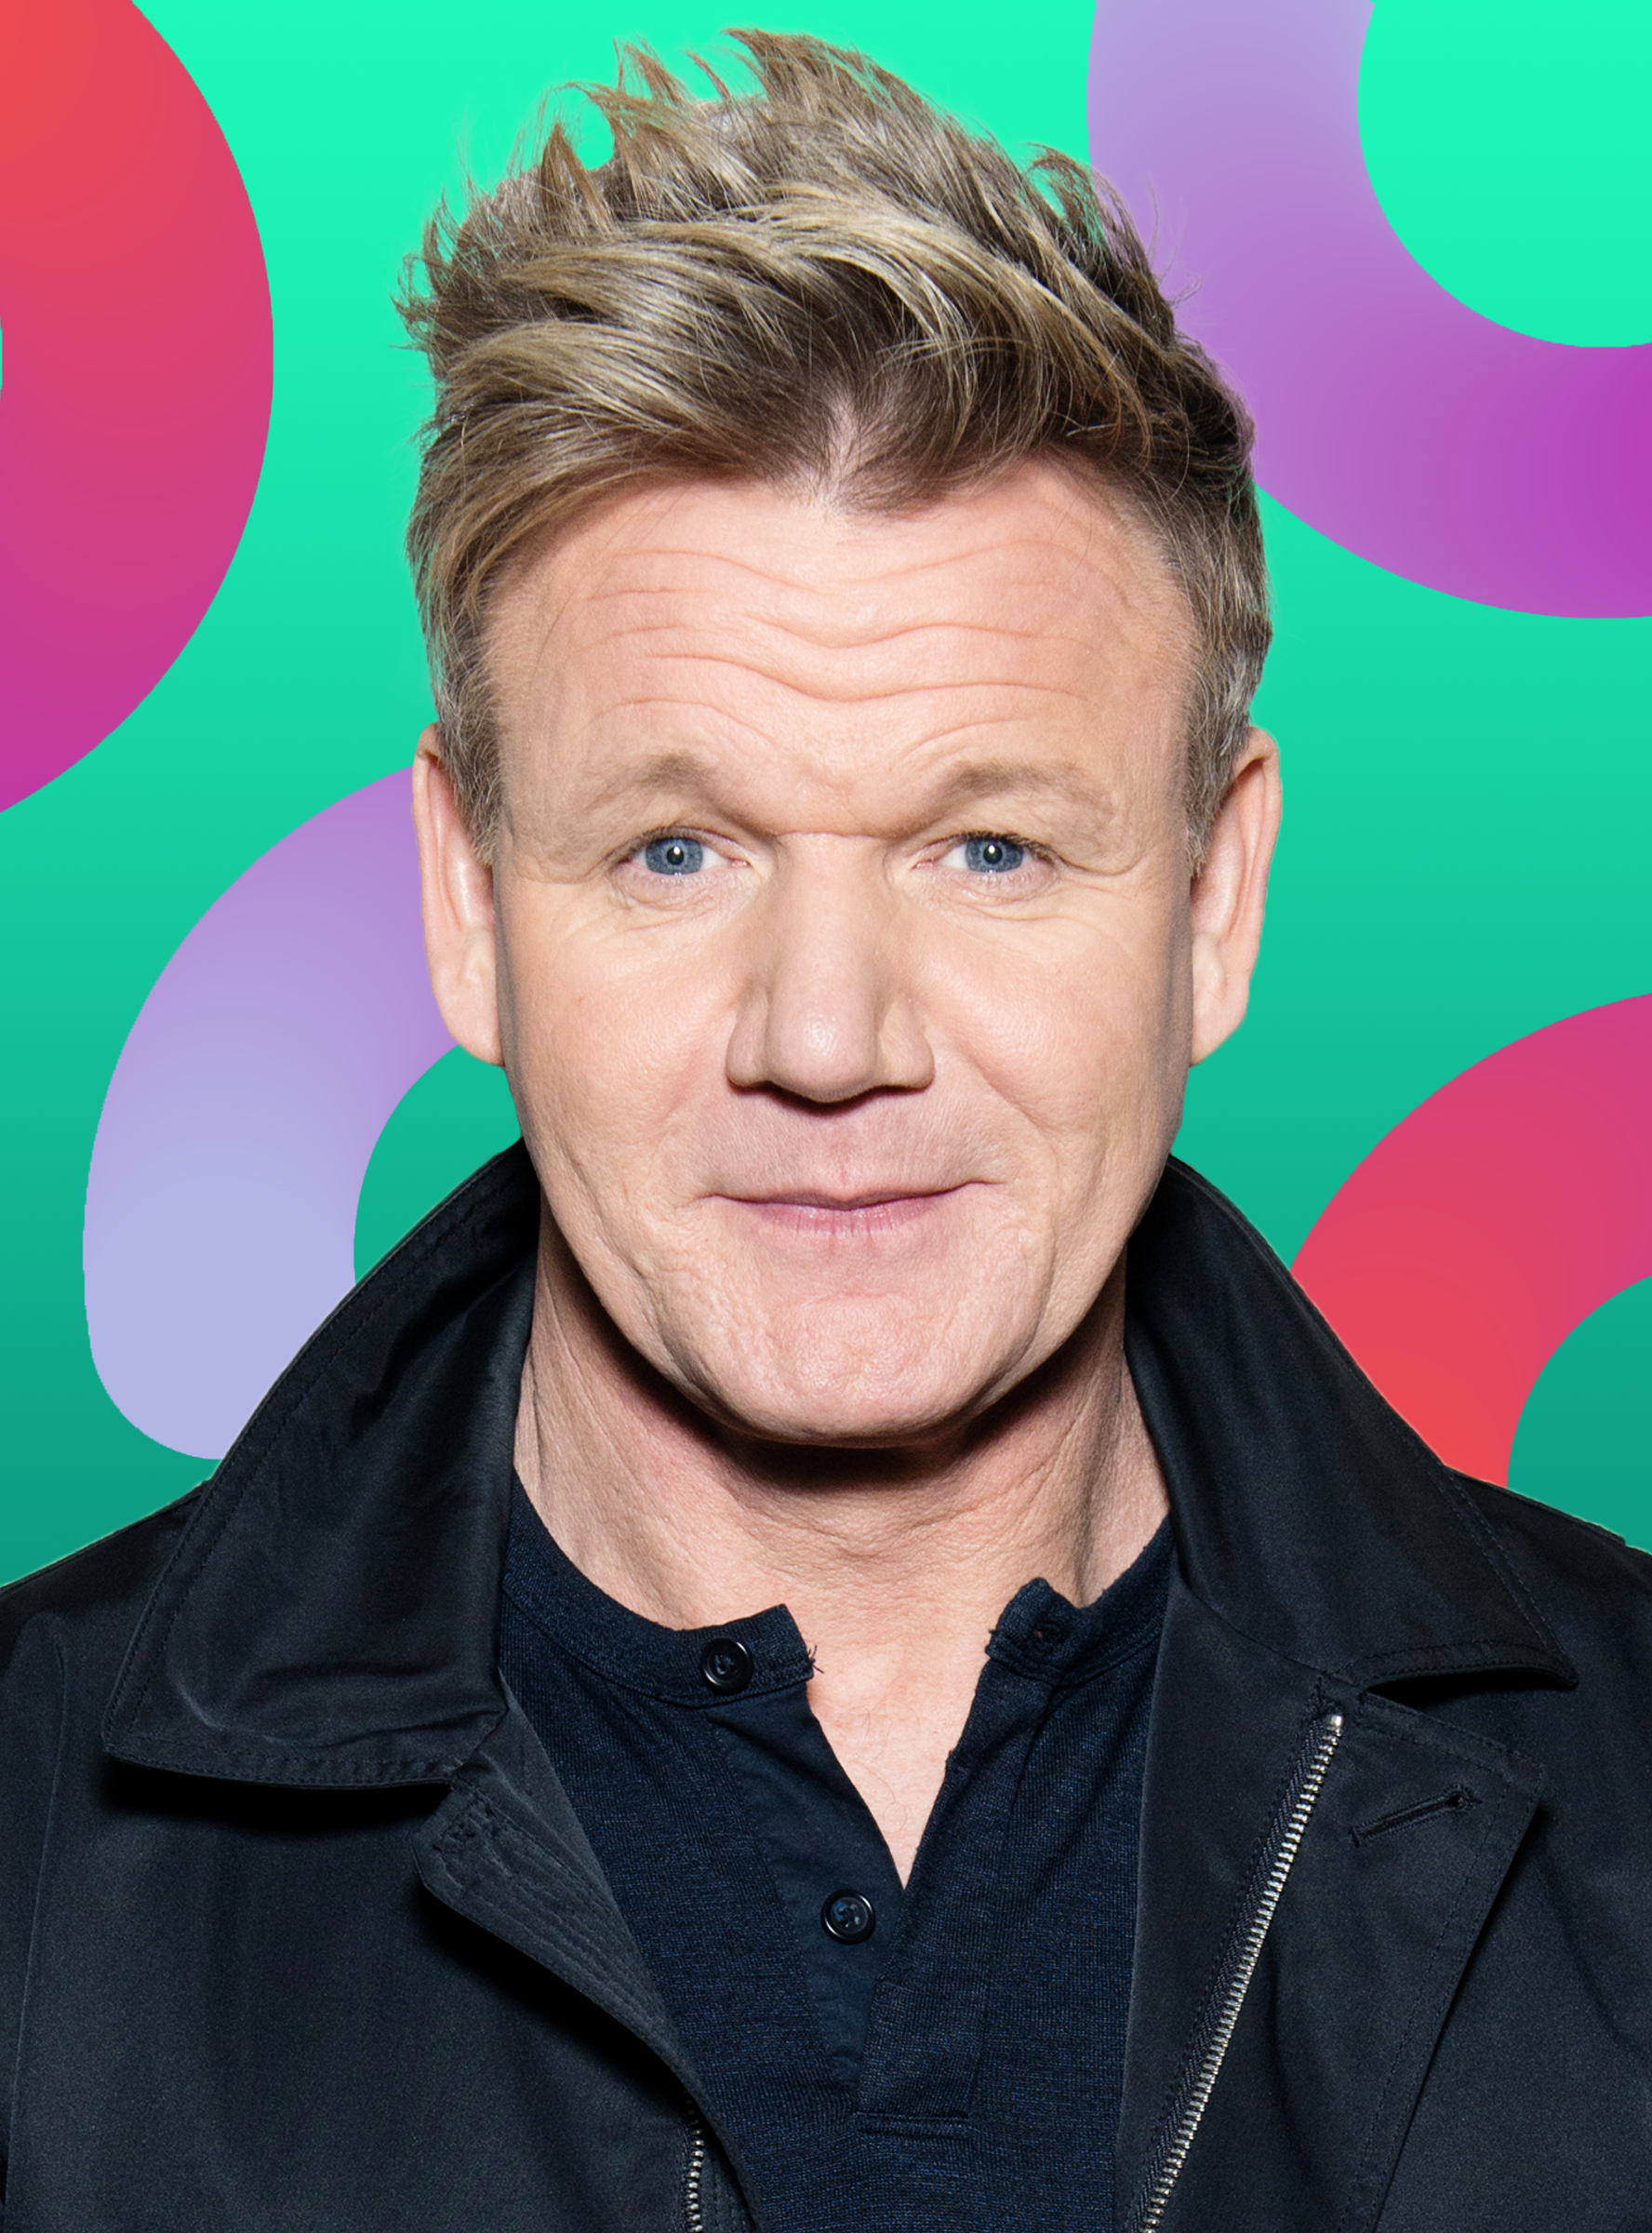 Gordon Ramsay Finally Weighs In On The Pineapple Pizza Debate Gordon Ramsay Chef Gordon Ramsay Ramsay